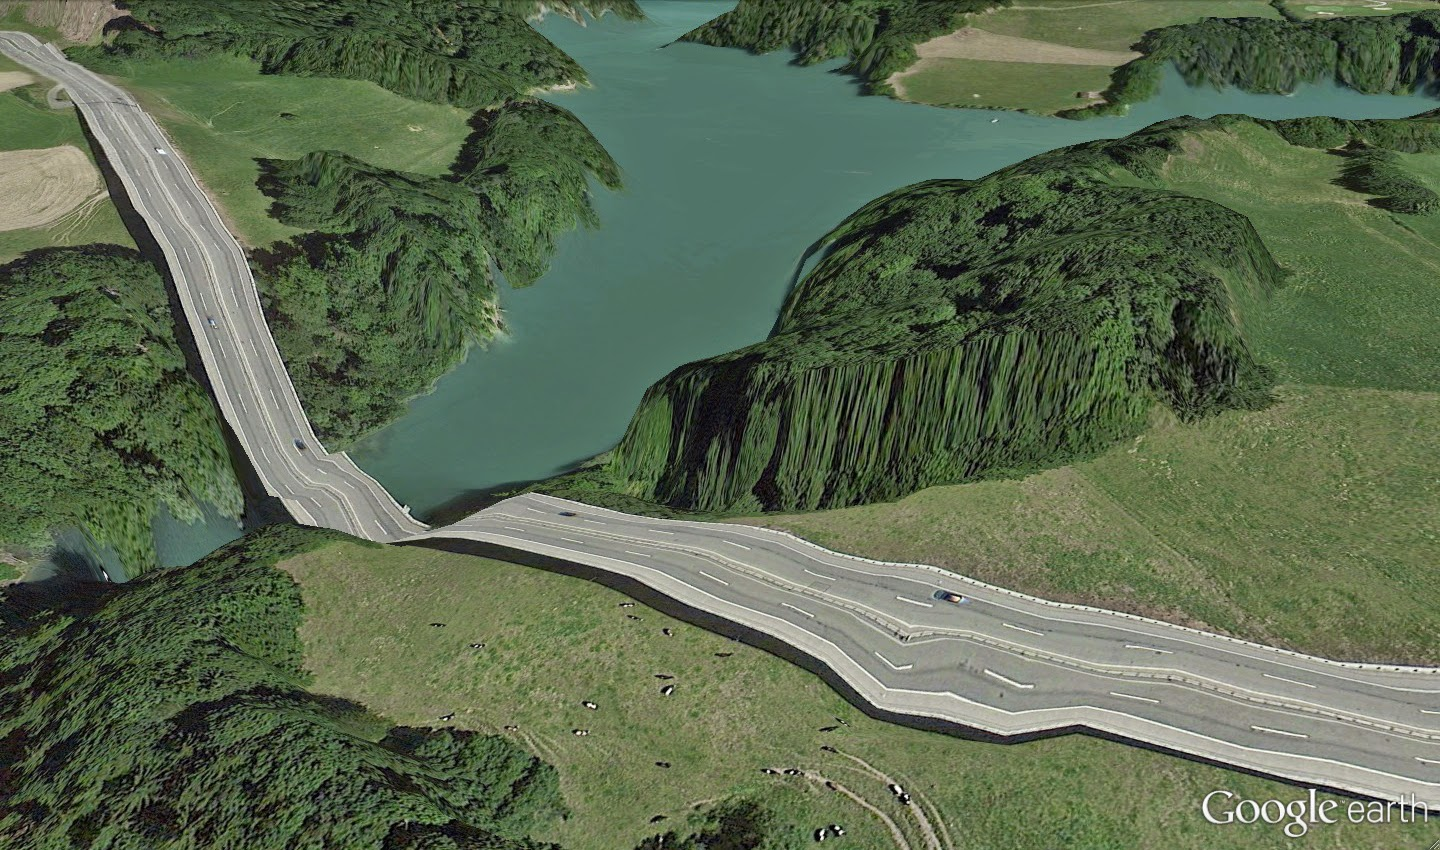 22-Switzerland-Clement-Valla-Postcards-From-Google-Earth-www-designstack-co